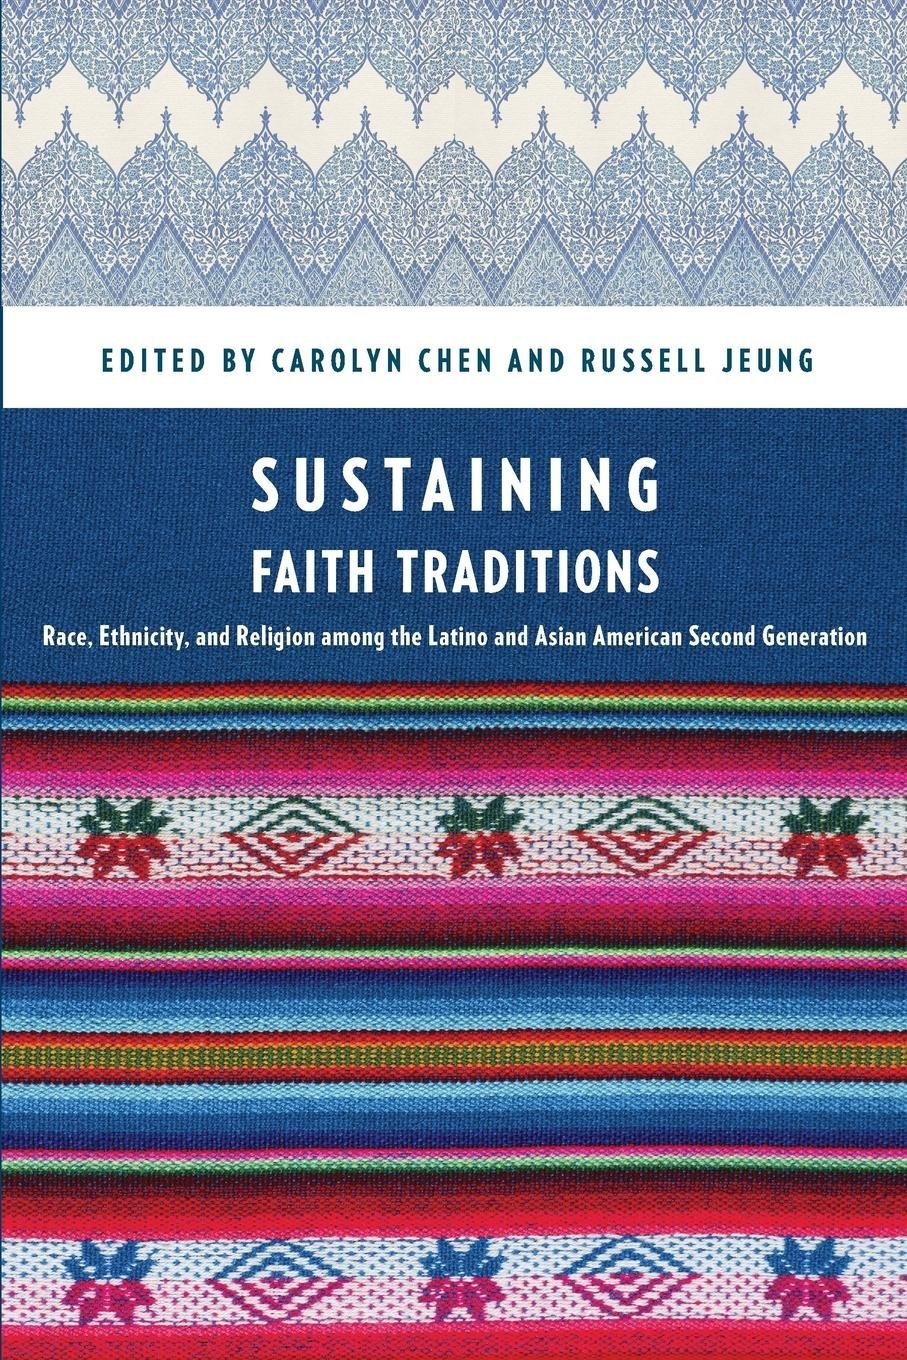 Download Sustaining Faith Traditions: Race, Ethnicity, and Religion among the Latino and Asian American Second Generation pdf